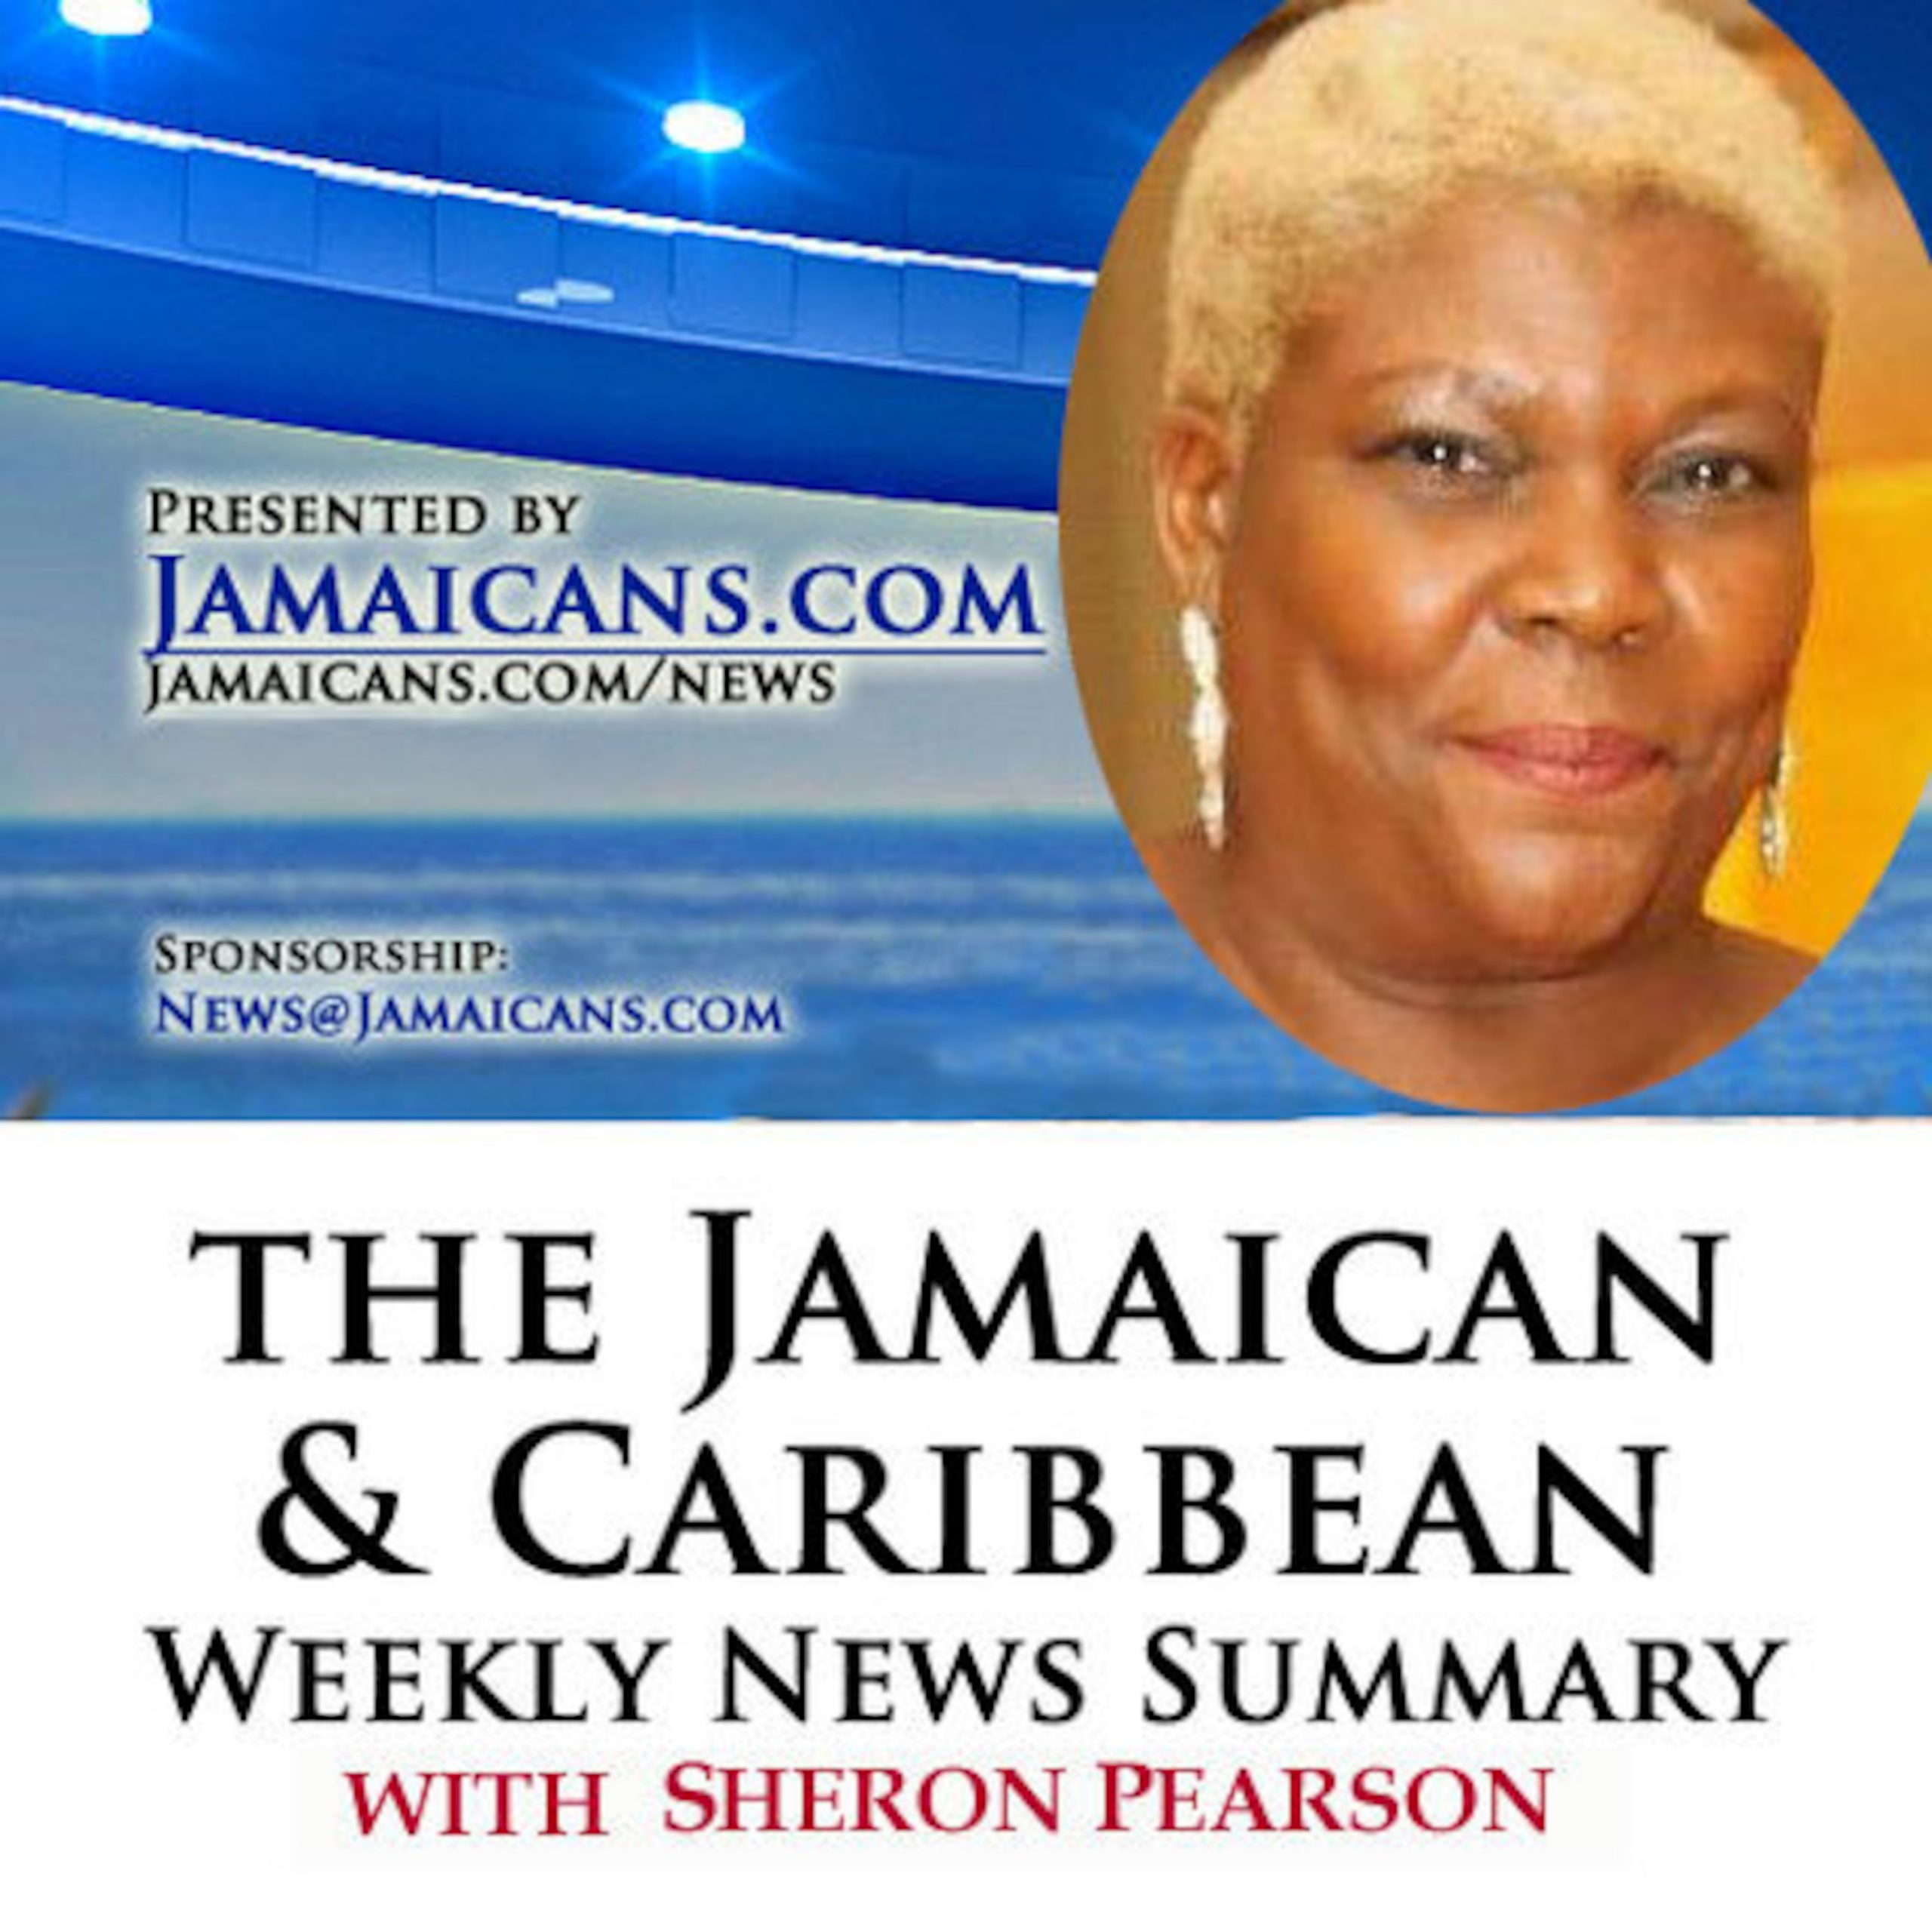 Listen to the Podcast of The Jamaica & Caribbean Weekly News Summary for the week ending November 27, 2019